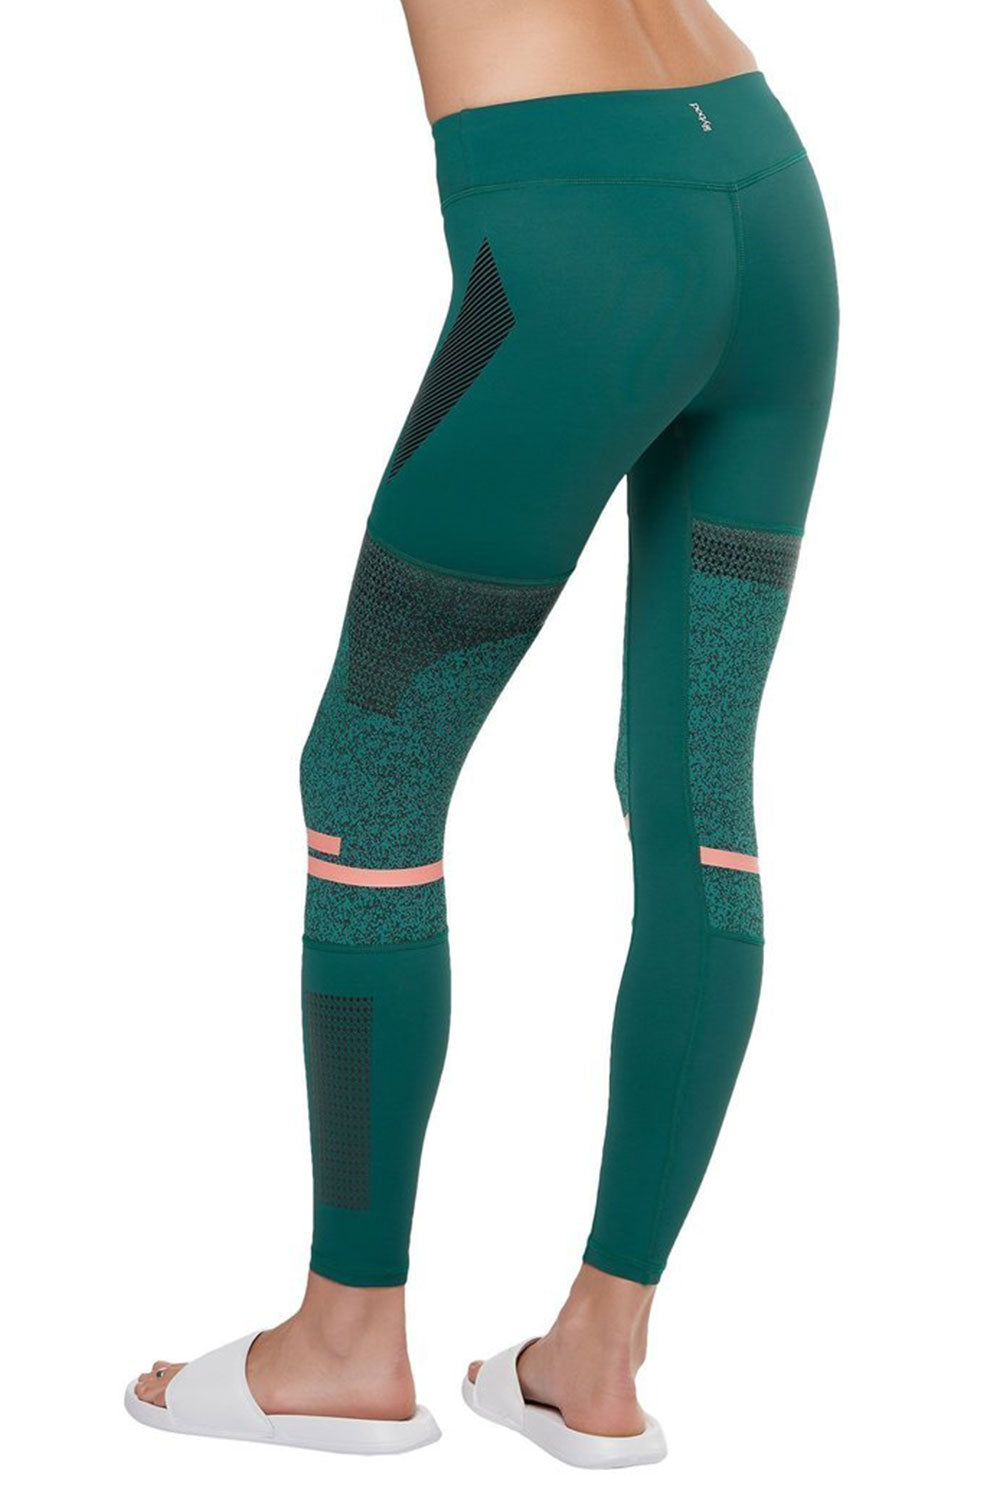 Lilybod Frankie Legging - Deep Teal - Sculptique